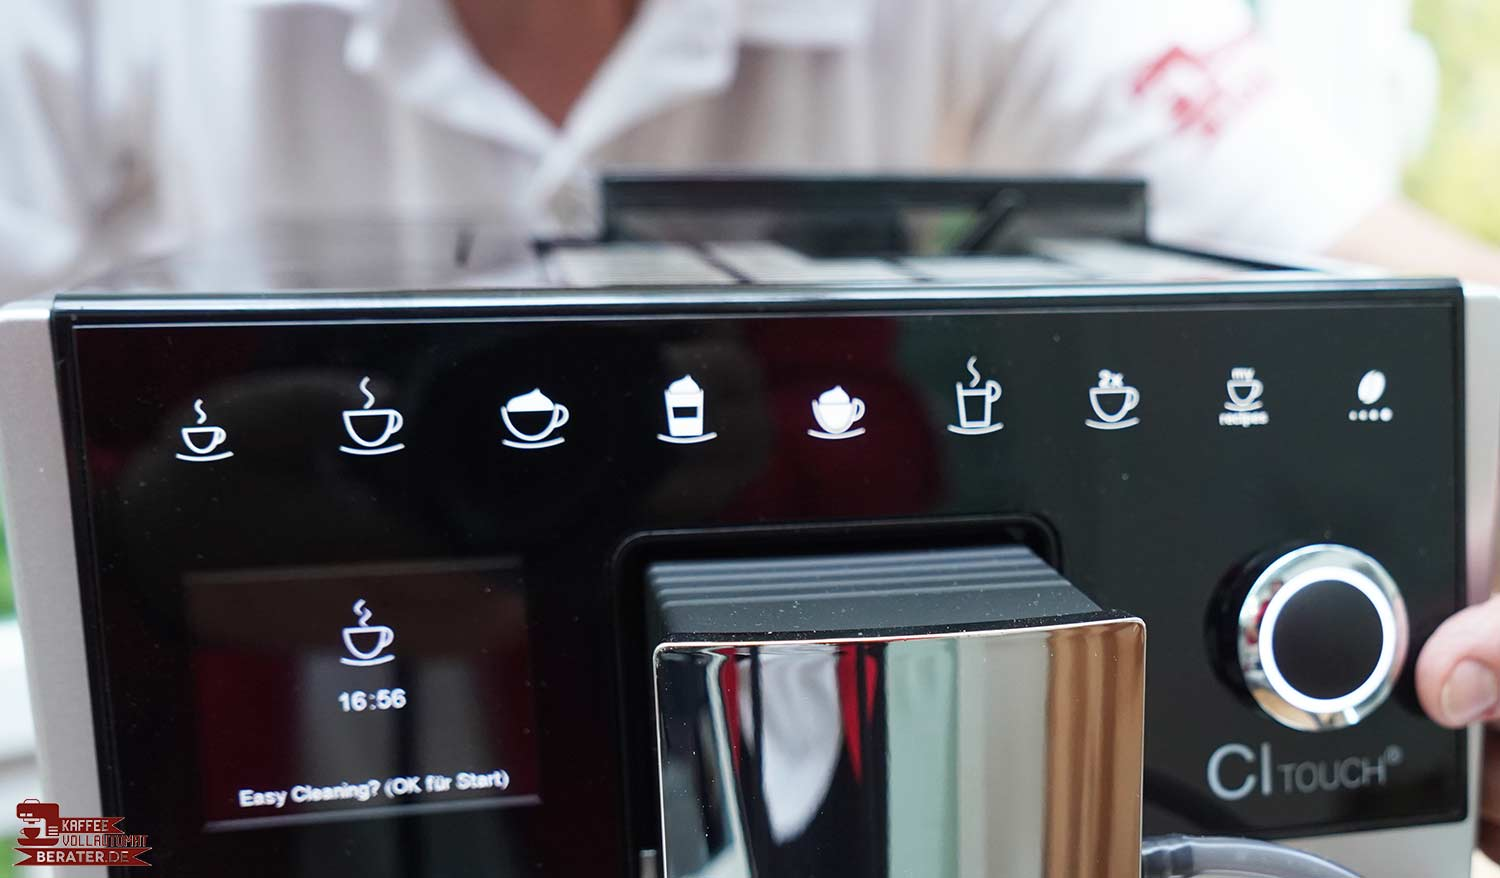 Melitta-CI-Touch Display in Farbe